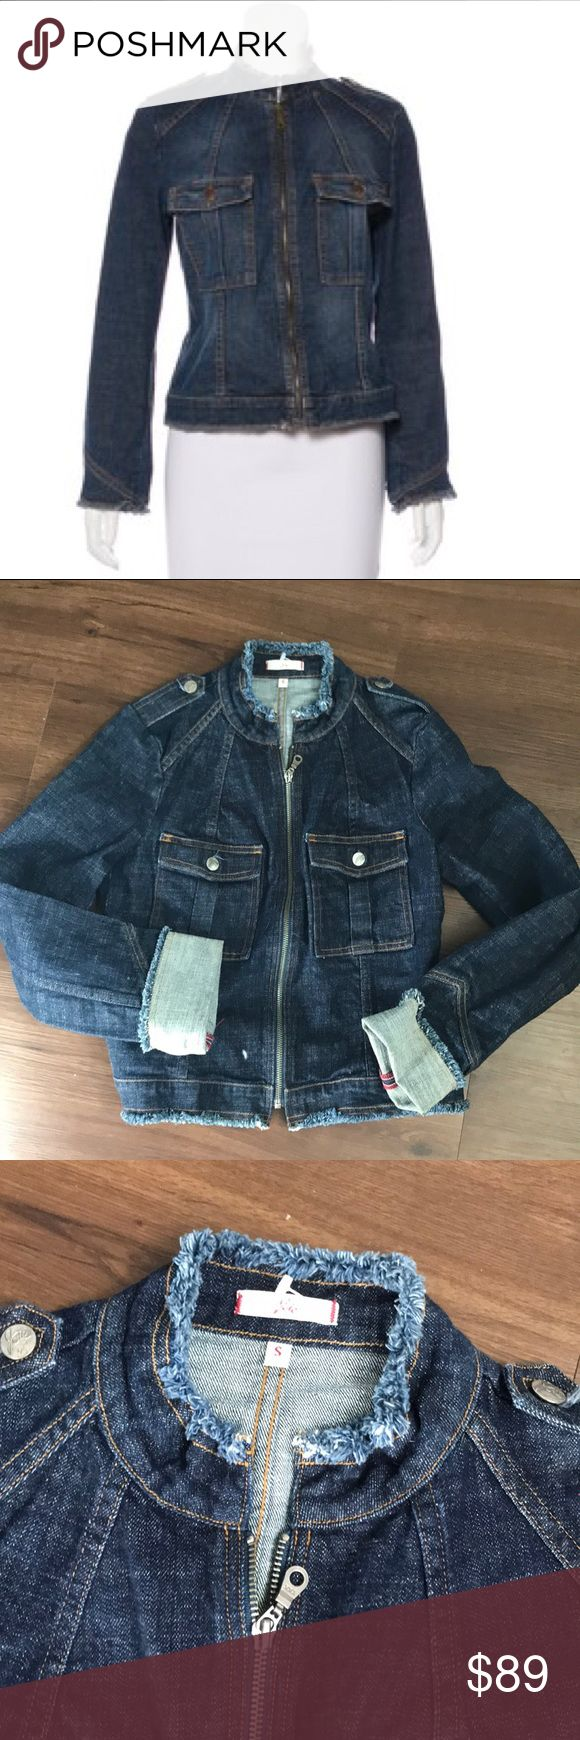 """Joie Dark Denim Zip Up Jean Jacket Small Medium wash blue Joie denim jacket with dual flap pockets and zip closure at front. Side small. Bust: 36"""" Waist: 34"""" Shoulder: 16"""" Length: 22"""" Sleeve: 23.5"""" Condition: Excellent. No visible signs of wear. Fabric: 98% Cotton, 2% Lycra Joie Jackets & Coats Jean Jackets"""